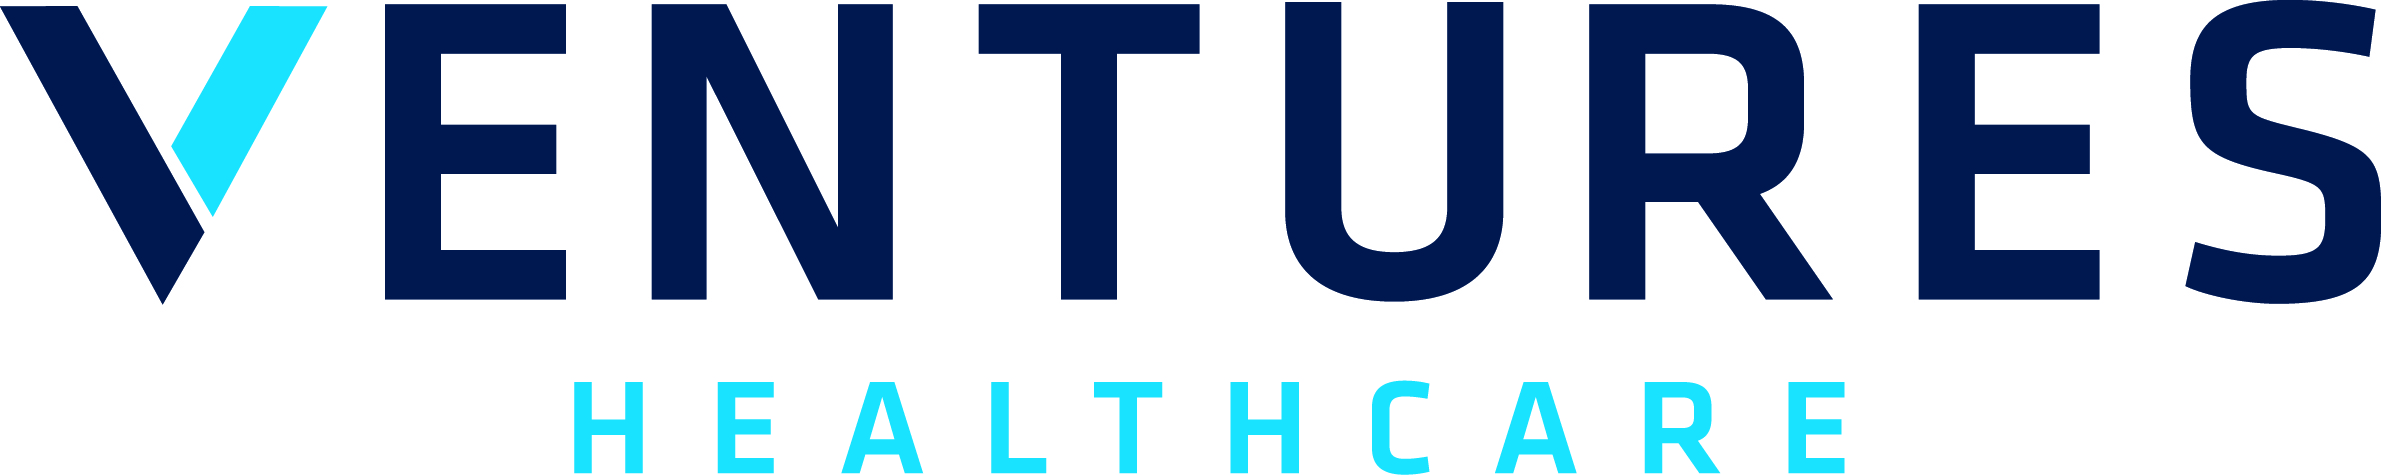 Ventures Healthcare (VHC)